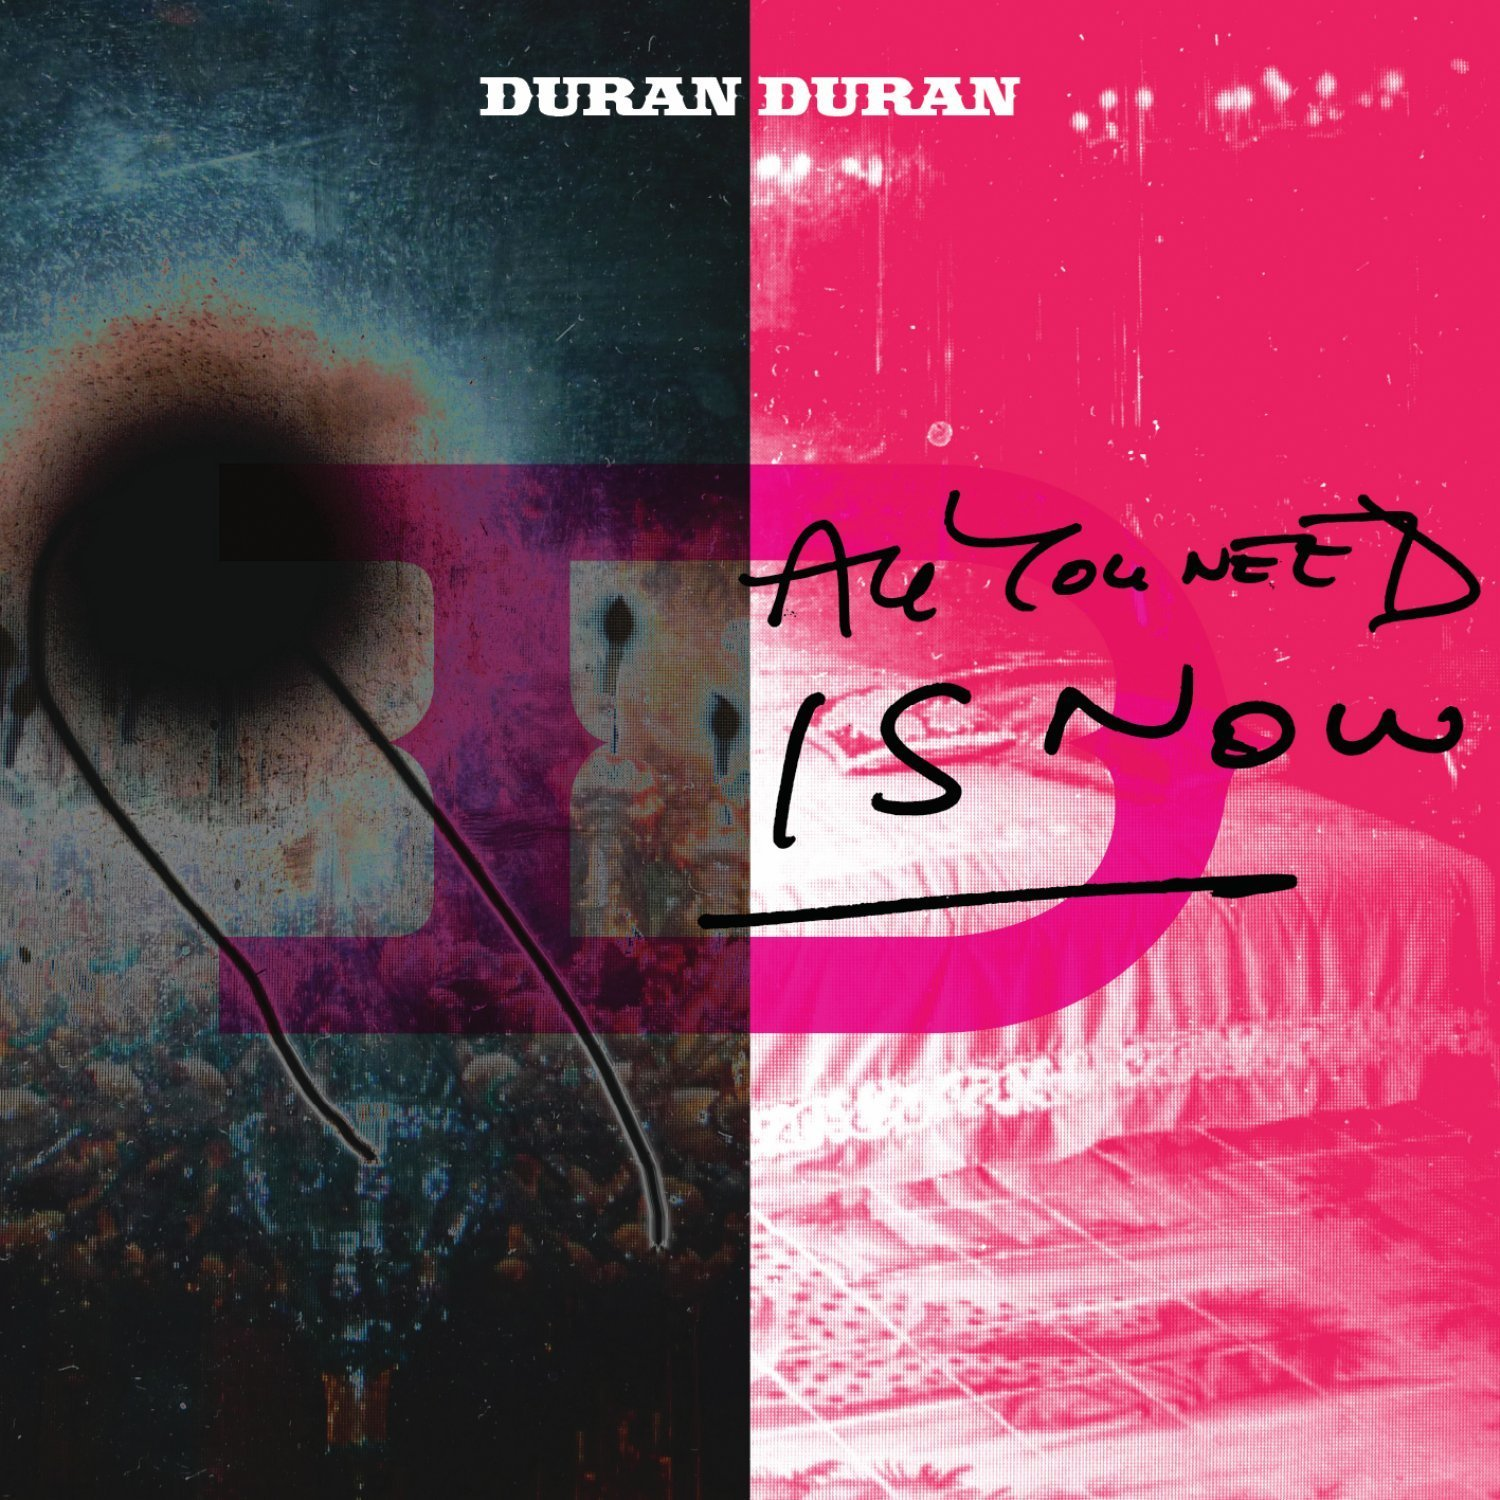 DURAN DURAN - ALL YOU NEED IS NOW (CD)